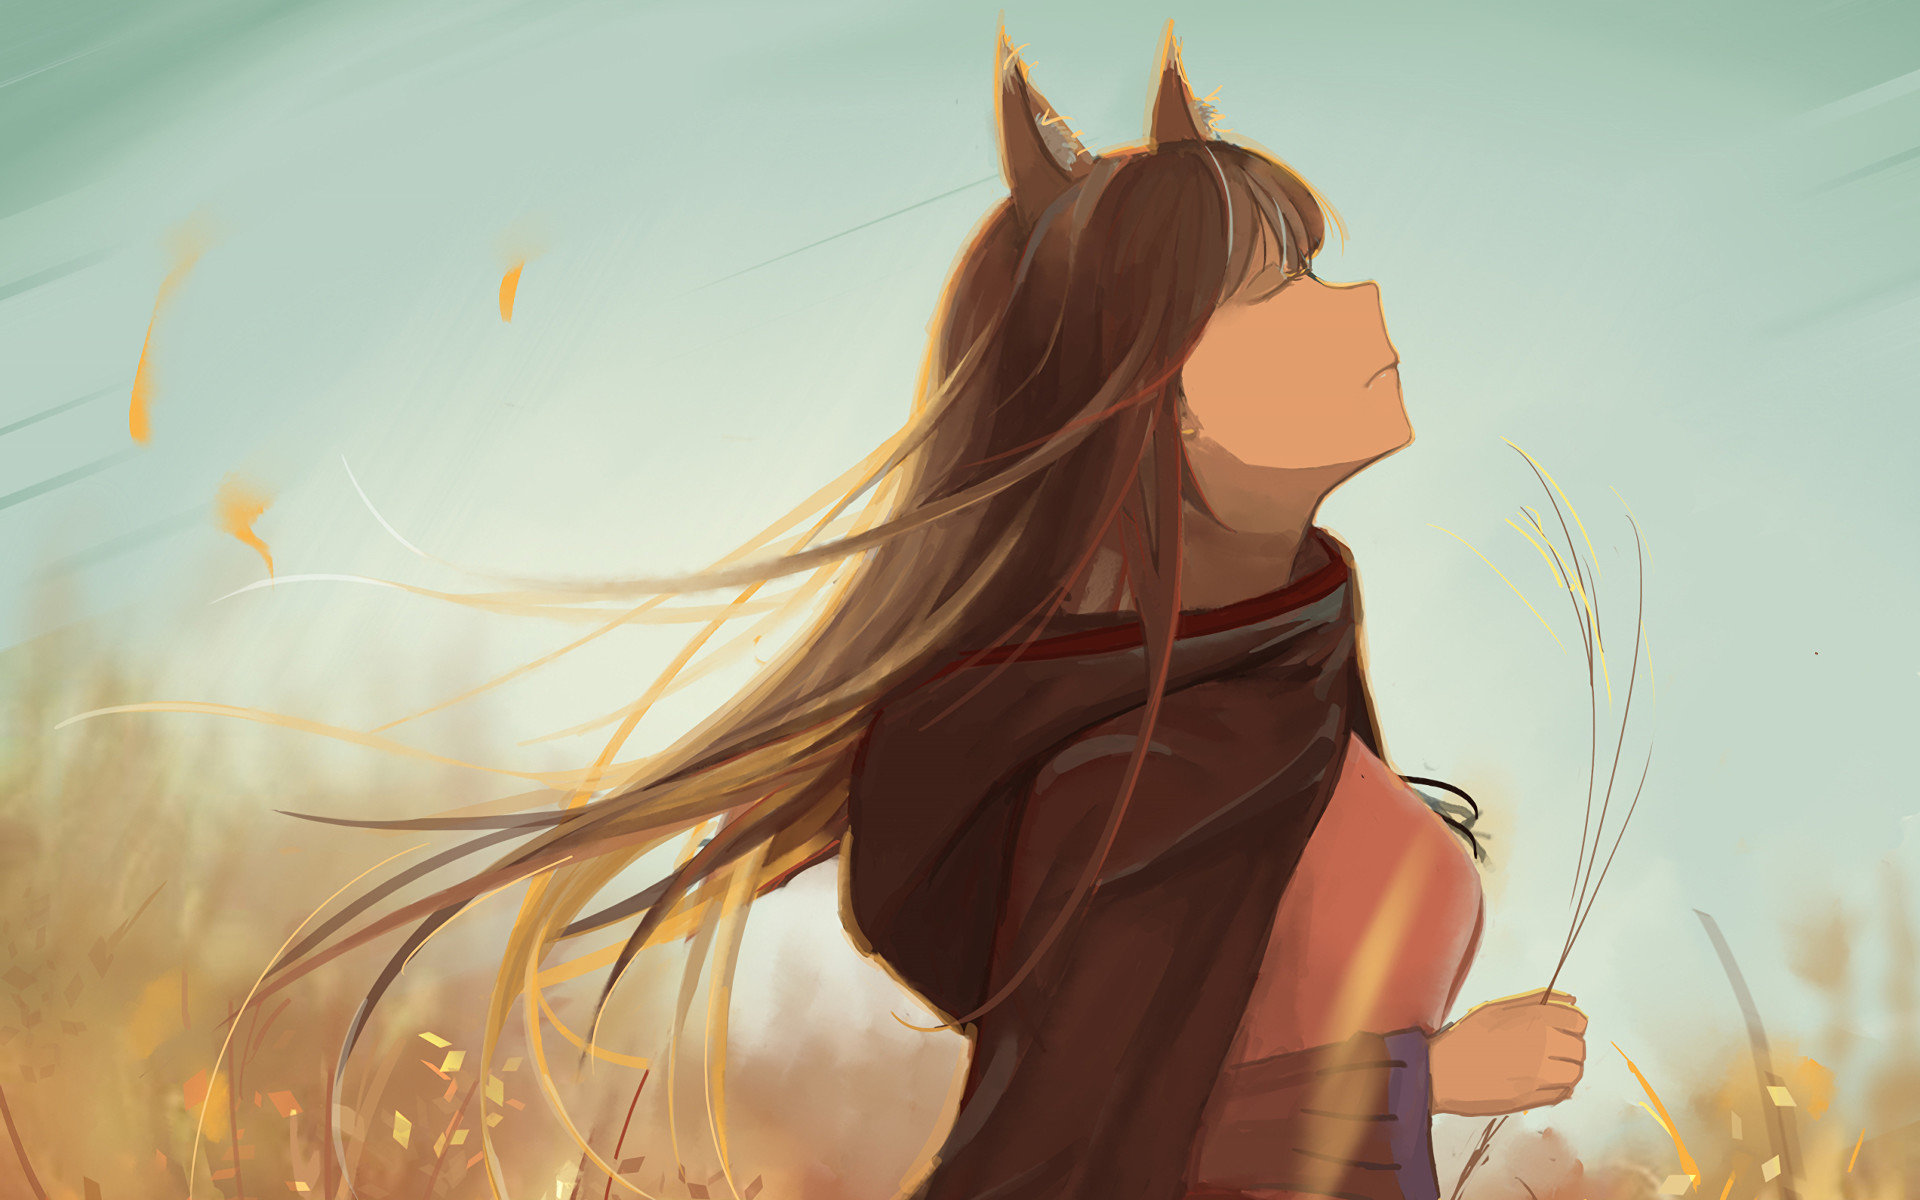 Best Holo Spice Wolf Wallpaper ID399640 For High Resolution Hd 1920x1200